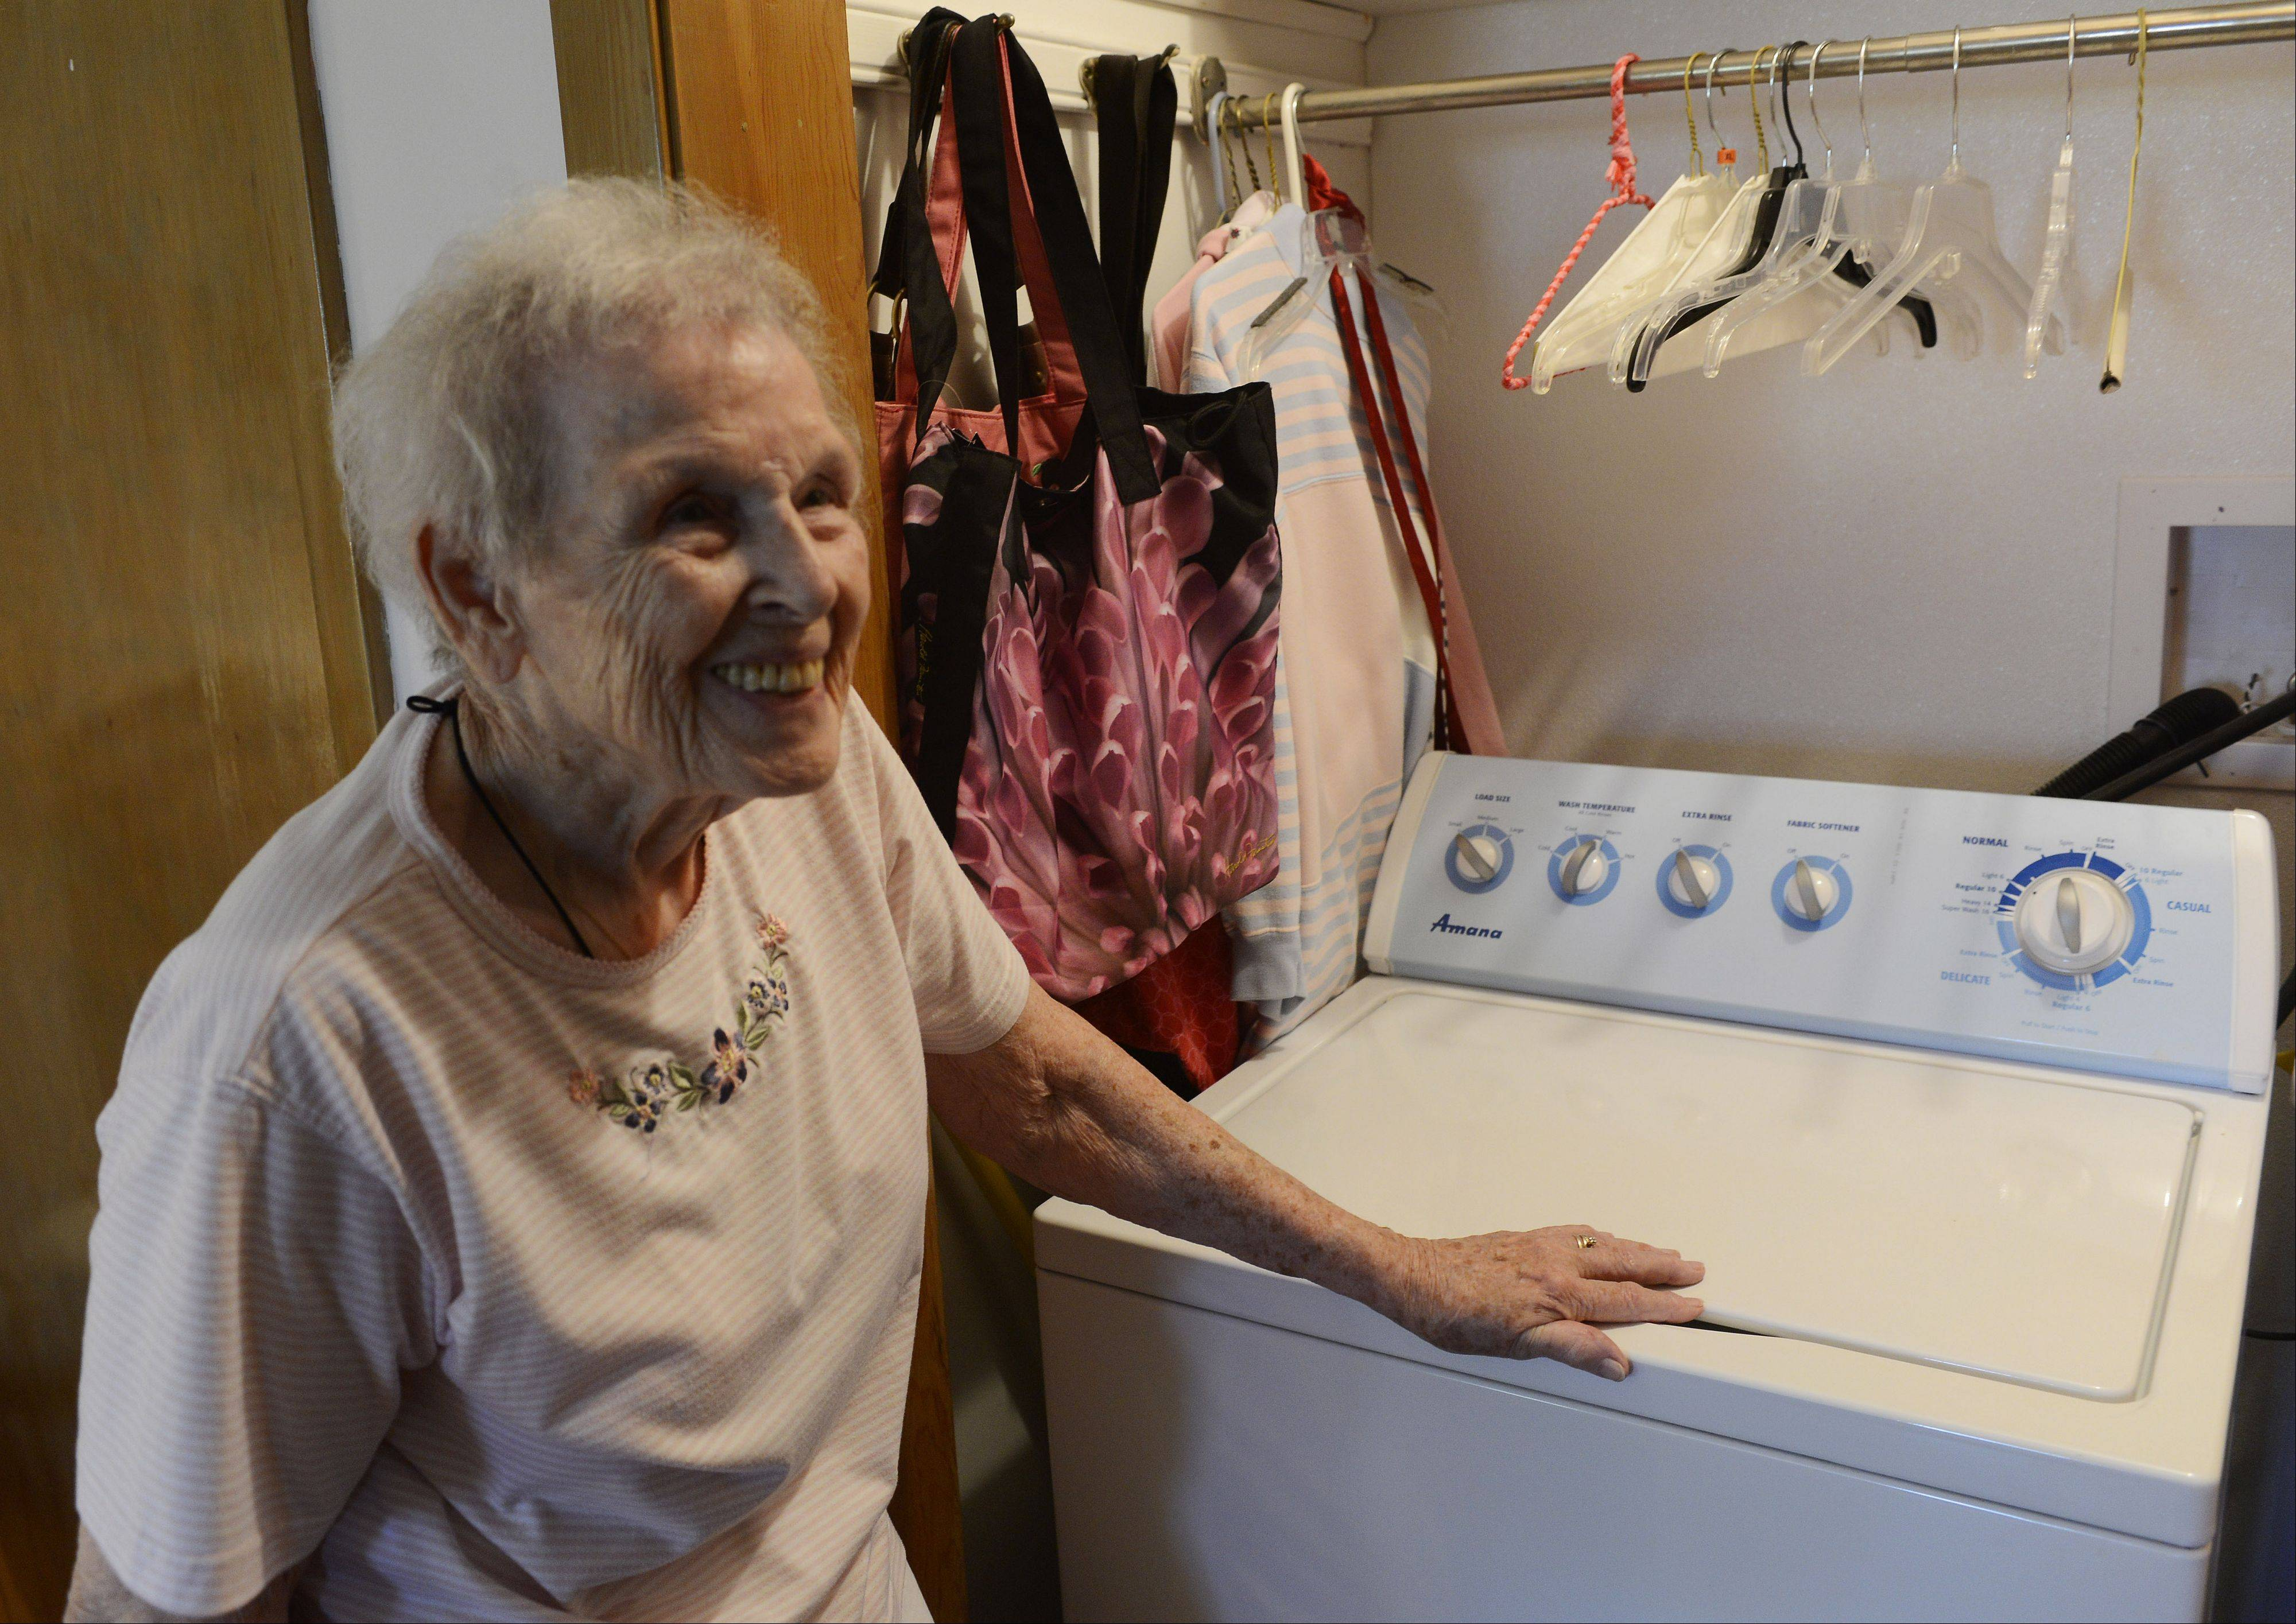 Margaret Fletcher of Des Plaines has a laundry room which was built into her bedroom closet so she does not have to go into the basement. Angel Guardian, a Barrington-area business co-founded by Fletcher's daughter-in-law, helps make senior's home's safe to live in after they begin to lose their physical abilities and strength.